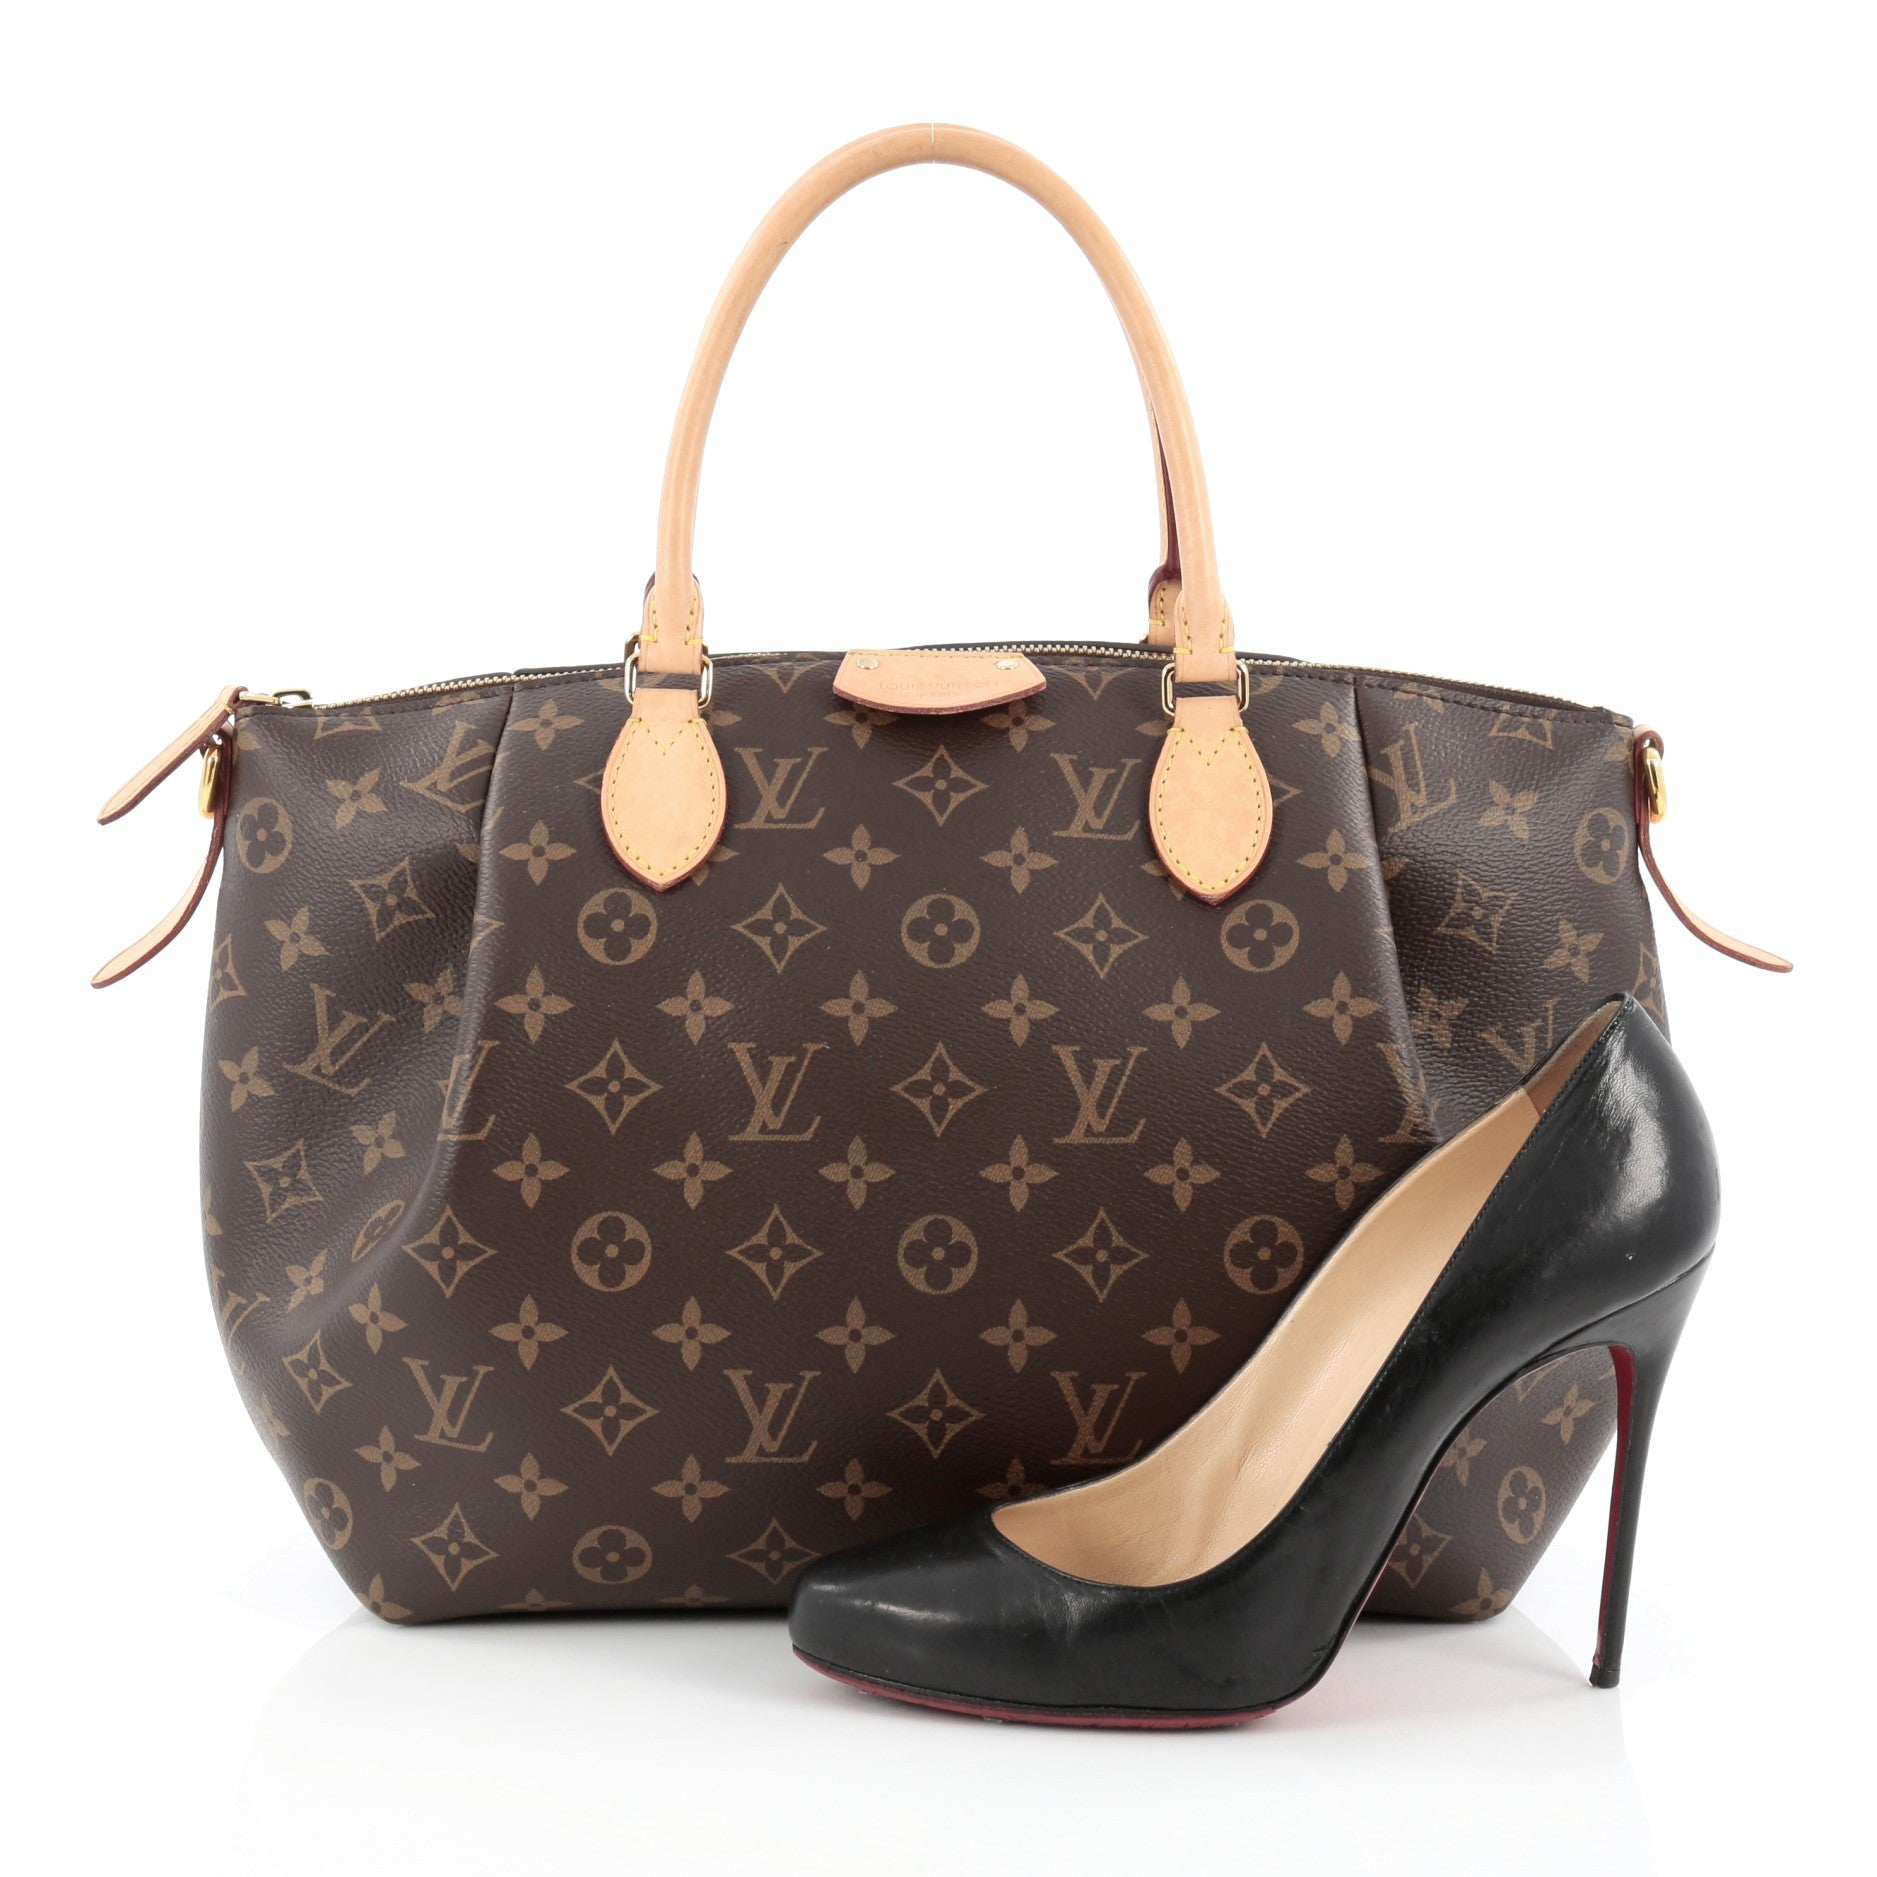 498ccd109aeb Buy Louis Vuitton Turenne Handbag Monogram Canvas MM Brown 1229101 –  Trendlee